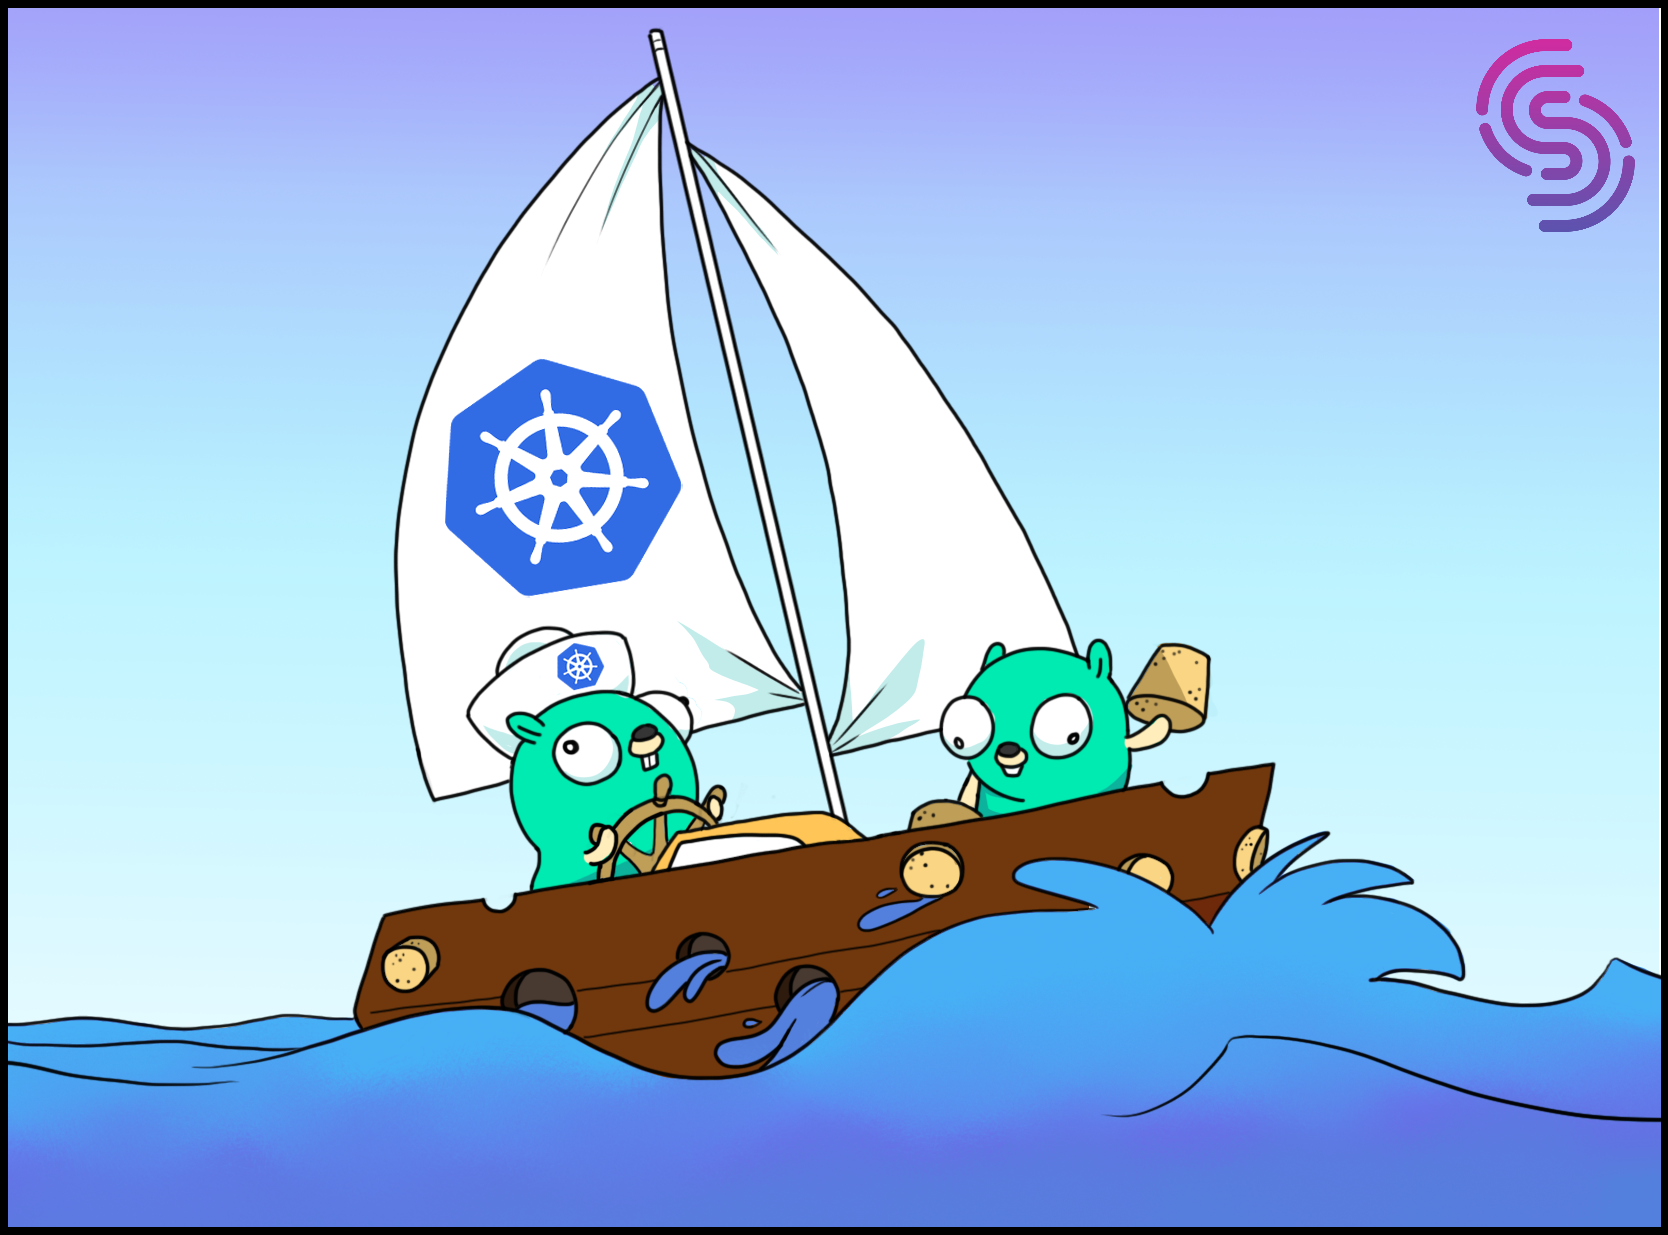 Keeping a Kubernetes cluster afloat